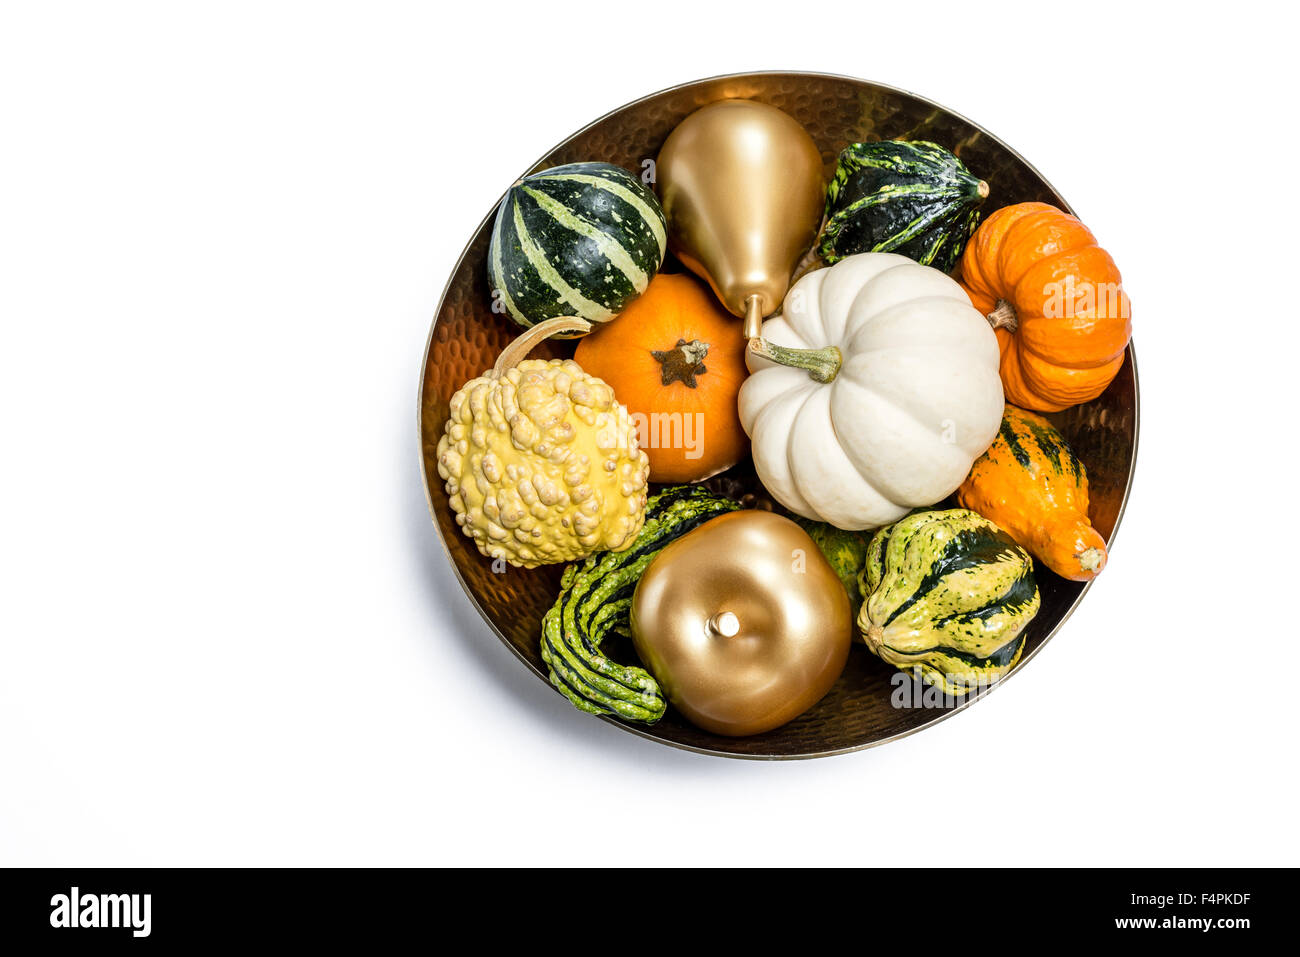 Thanksgiving Fall Cut Out Pumpkins & Gords in Gold Bowl with Gold Apple & Pear on White Background - Stock Image